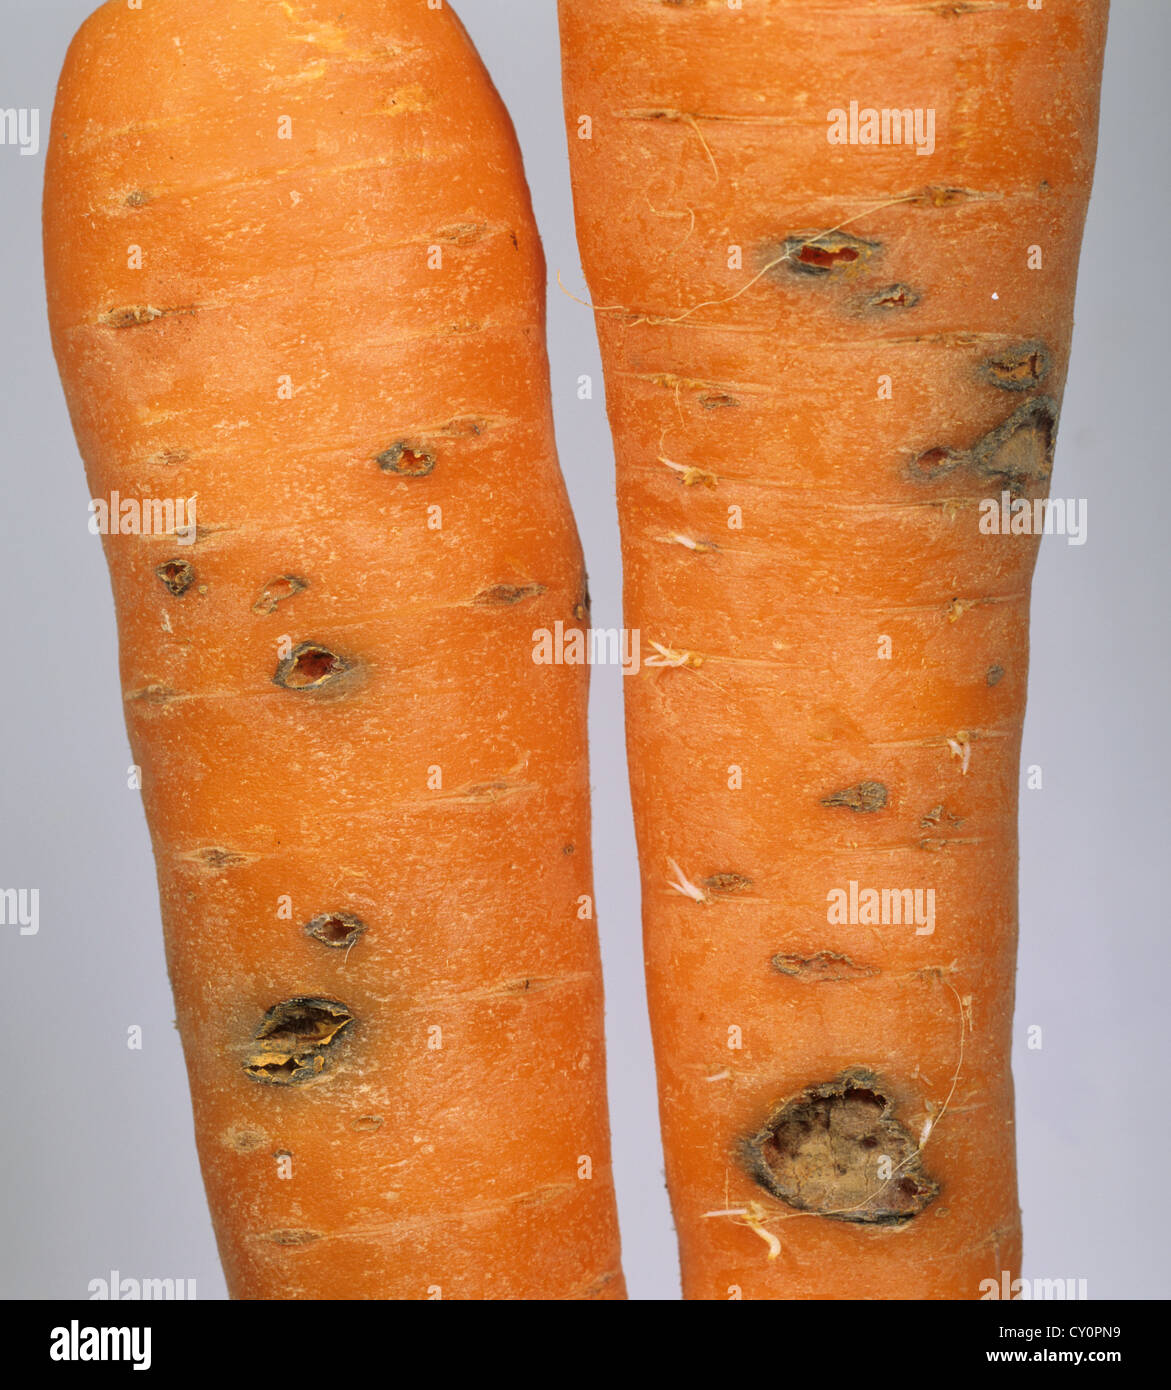 Cavity spot damage to a carrot root which results from several causes - Stock Image